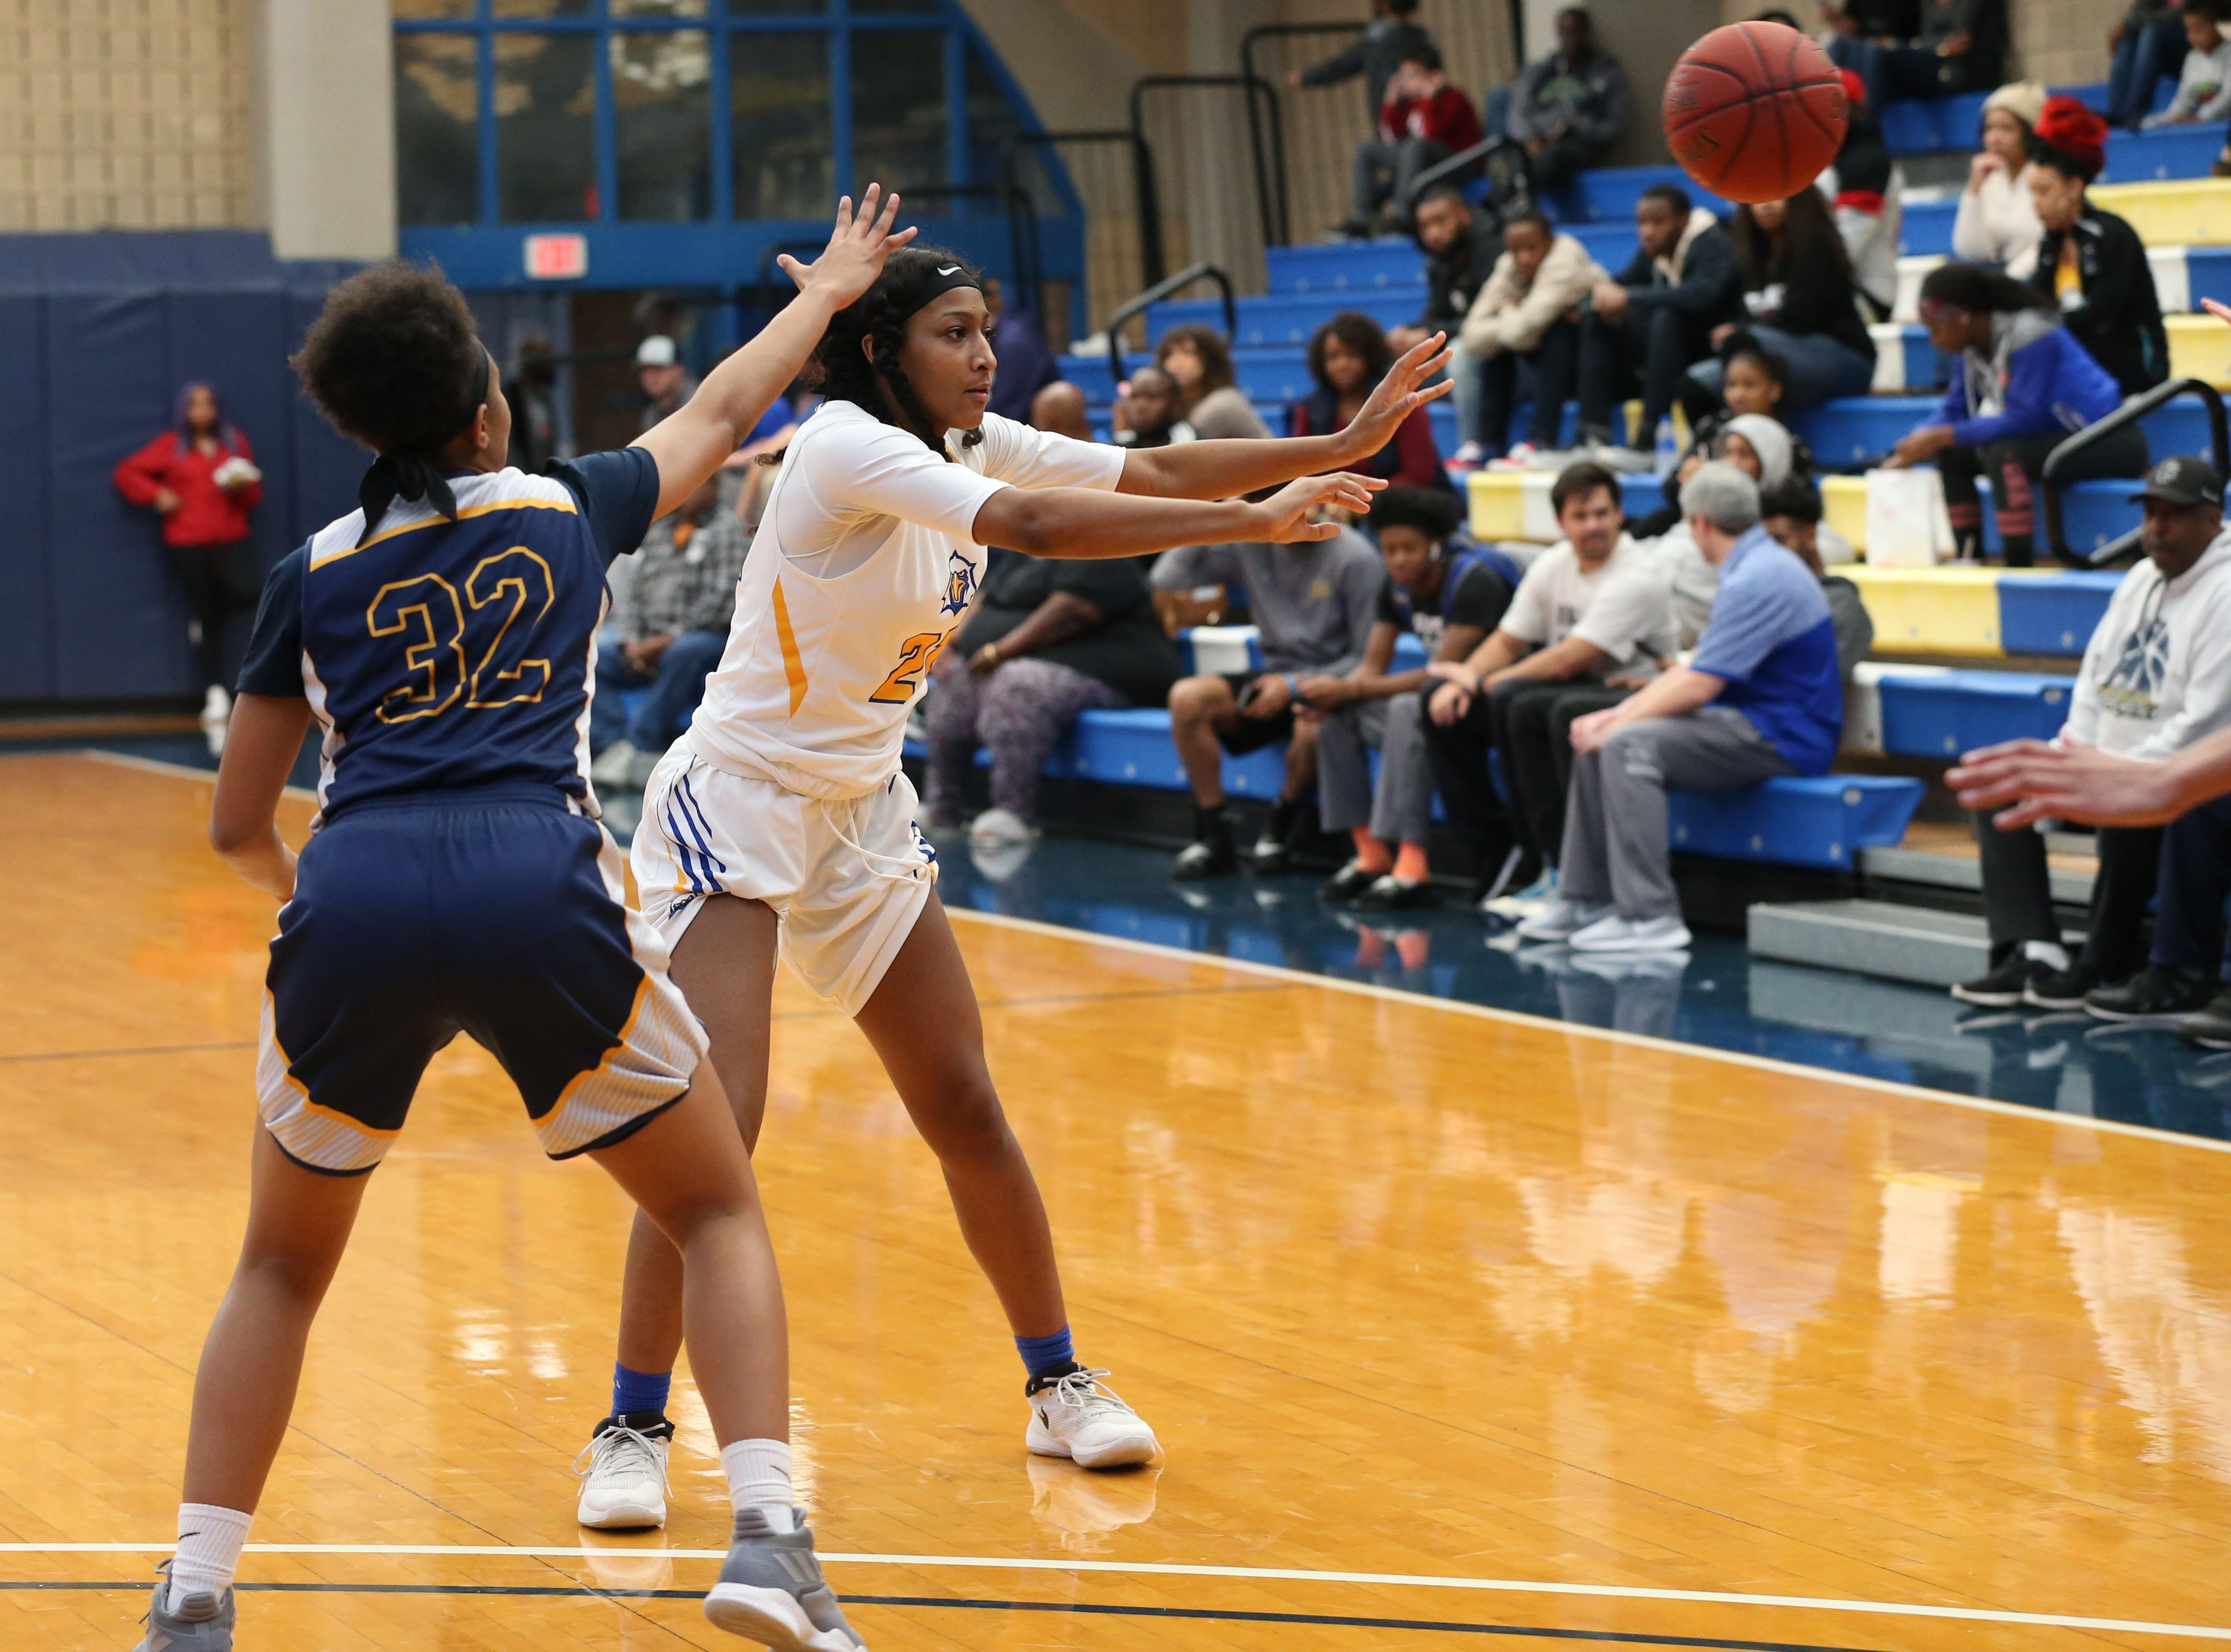 Tallahassee Community College Eagles forward Jada Perry (21) passes to her teammate. The Tallahassee Community College Eagles host the Gulf Coast State College Commodores in a conference match-up in the Eagledome, Saturday, Jan. 5, 2019.